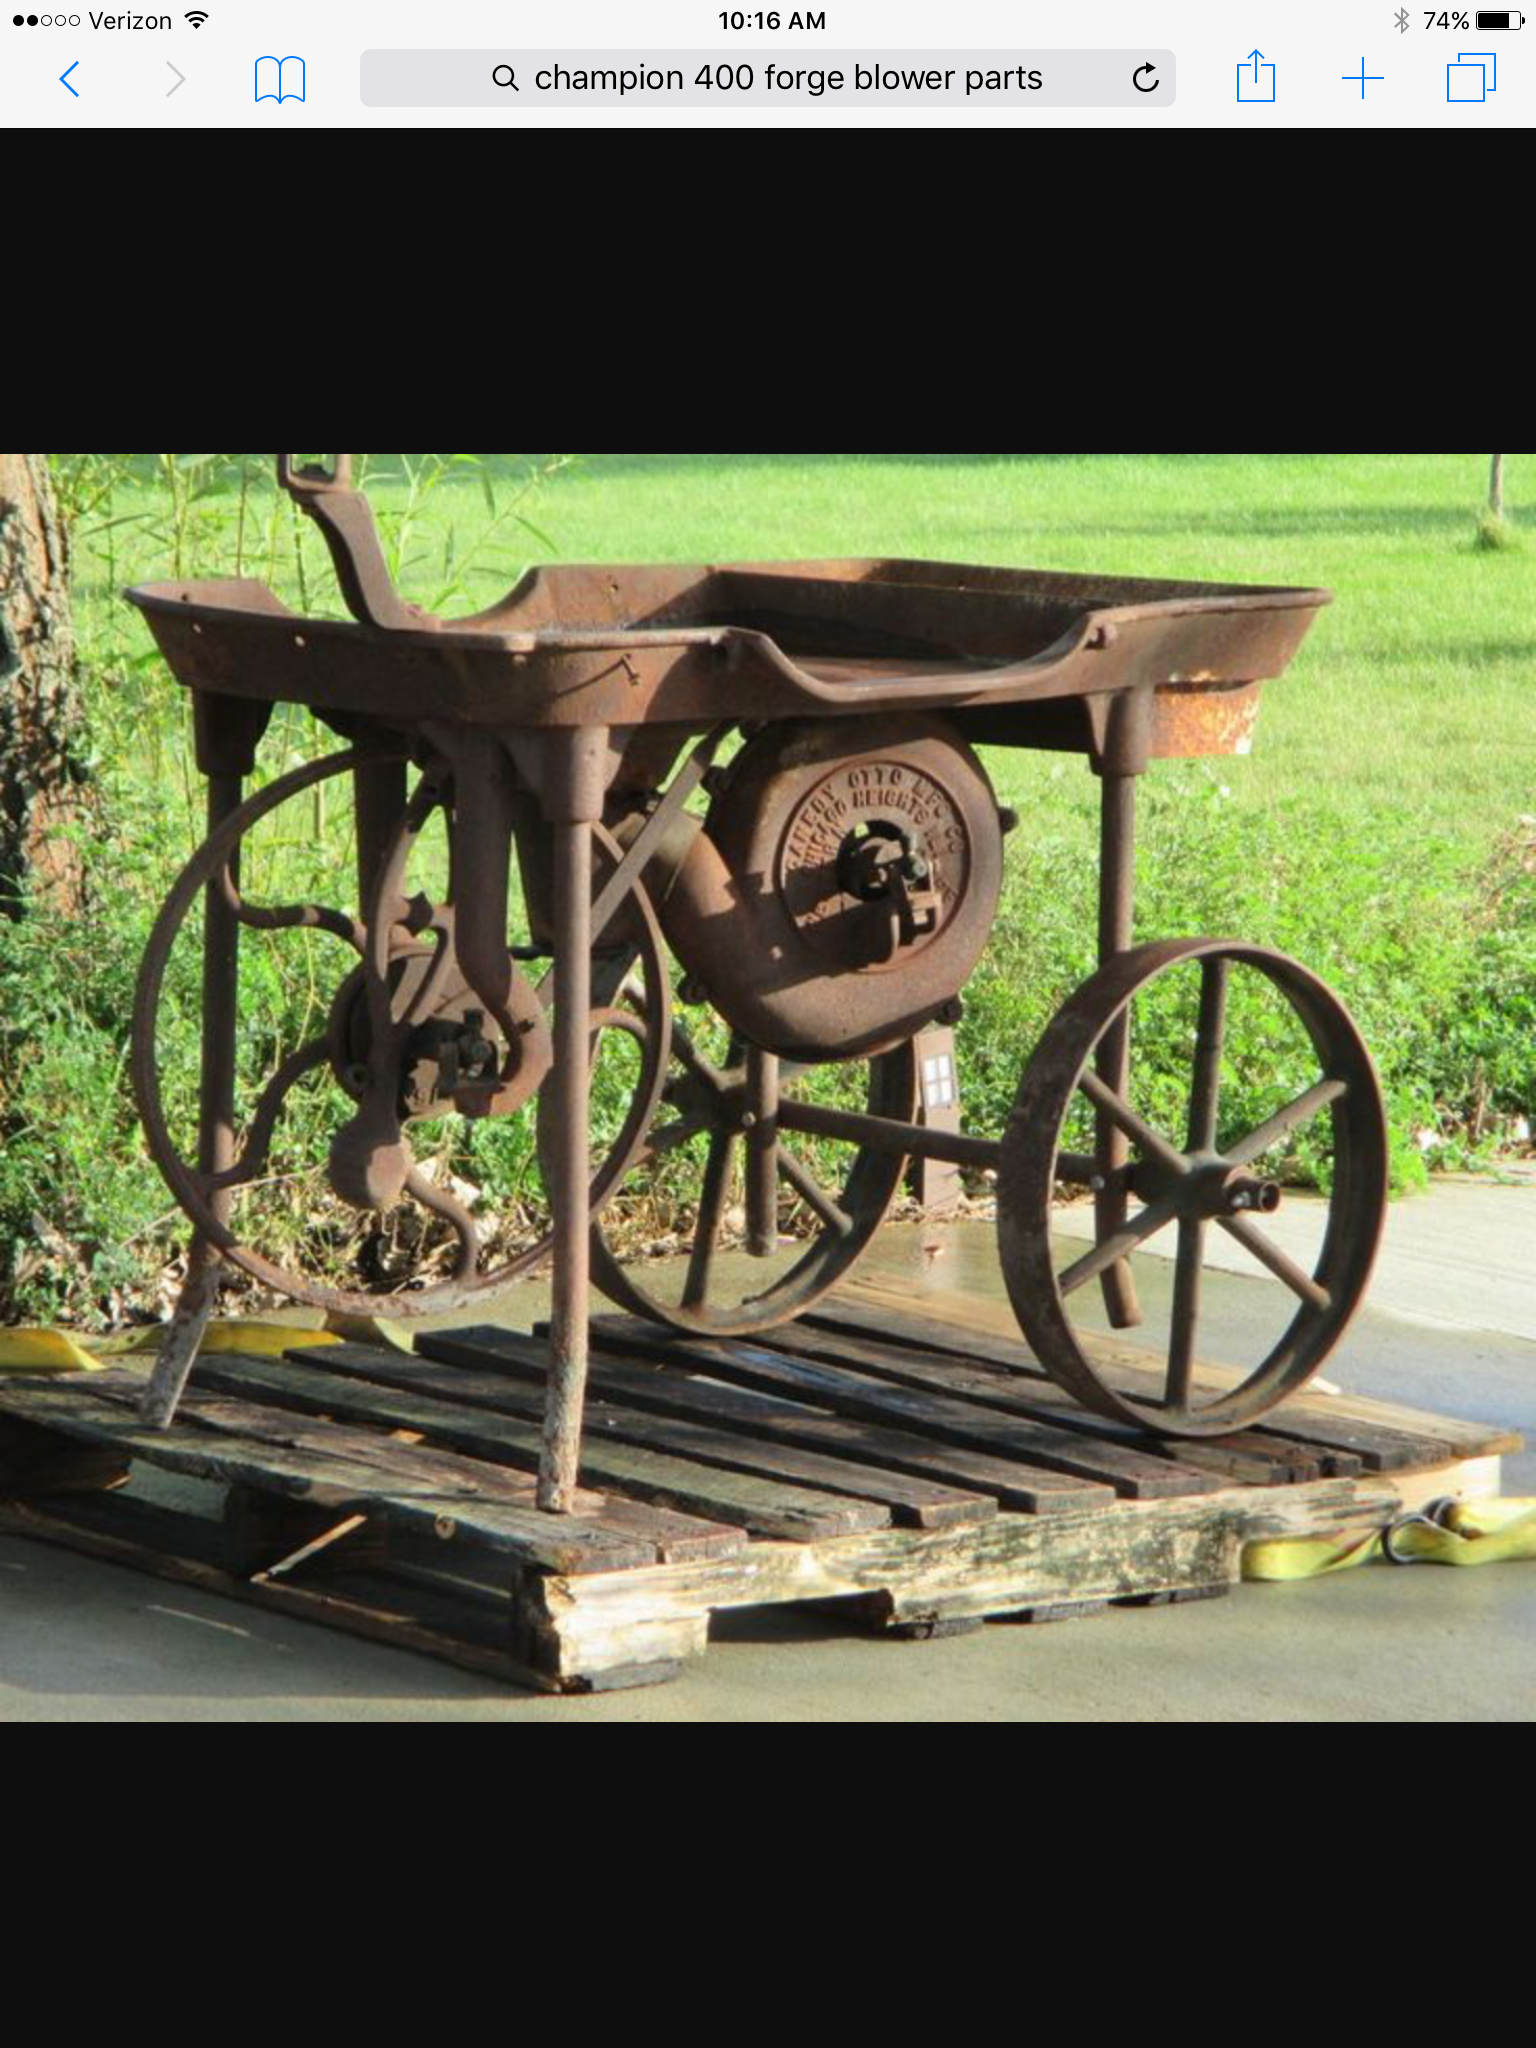 Pin by Larry Schoessow on blacksmithing projects | Blacksmith